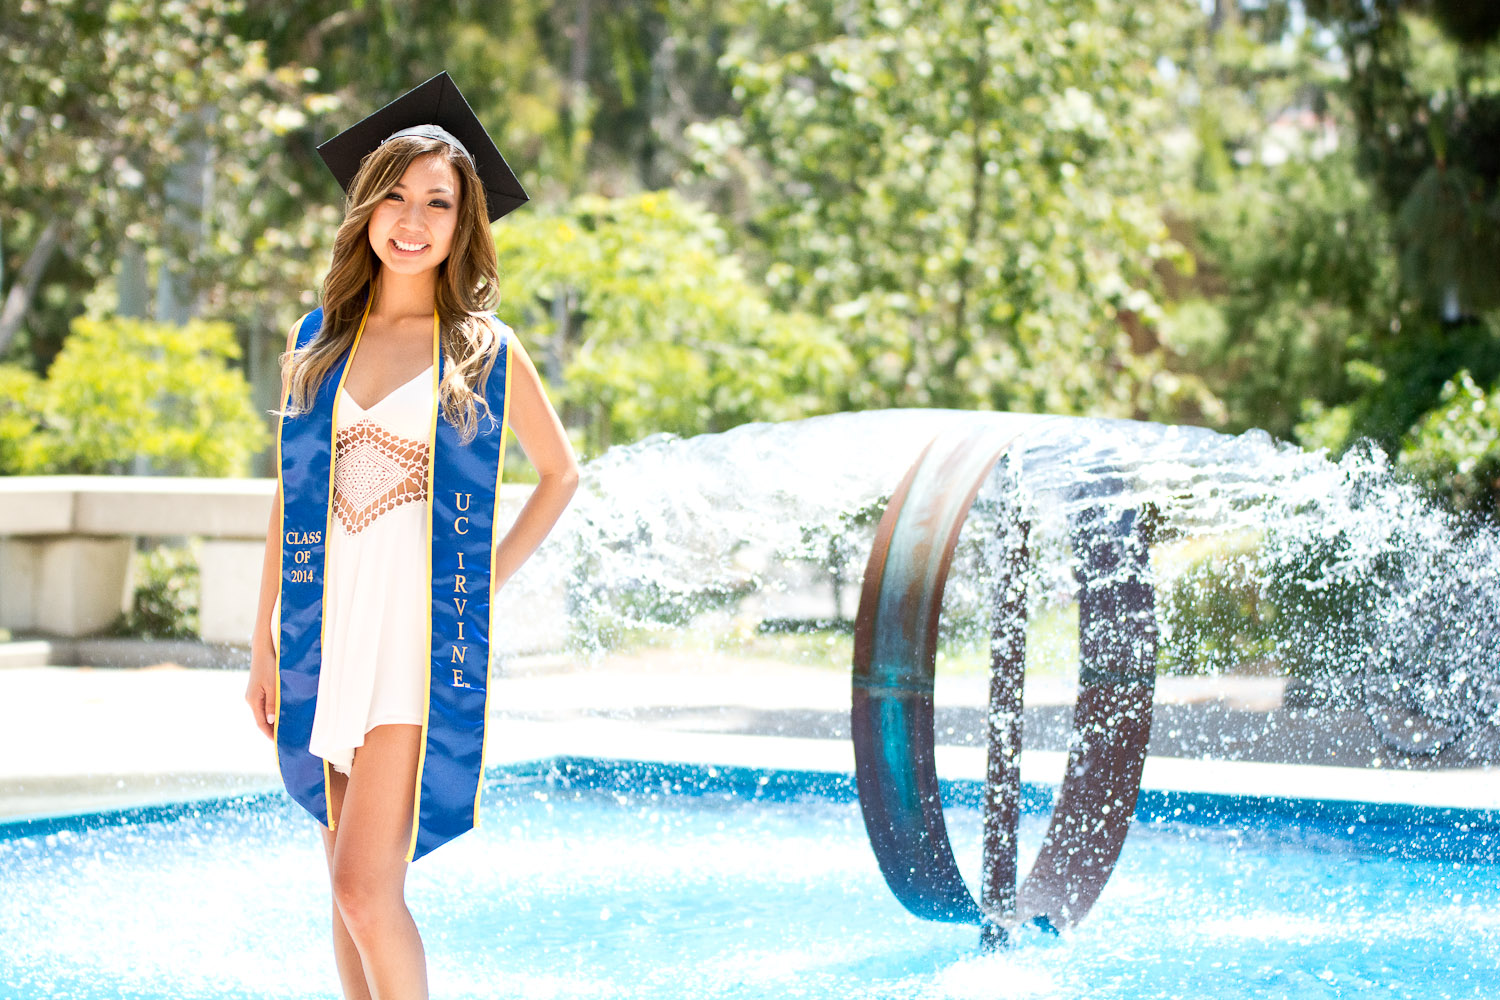 Bryan-Miraflor-Photography-Nancy-D-Grad-Photoshoot-UCI-20140607-0025.jpg